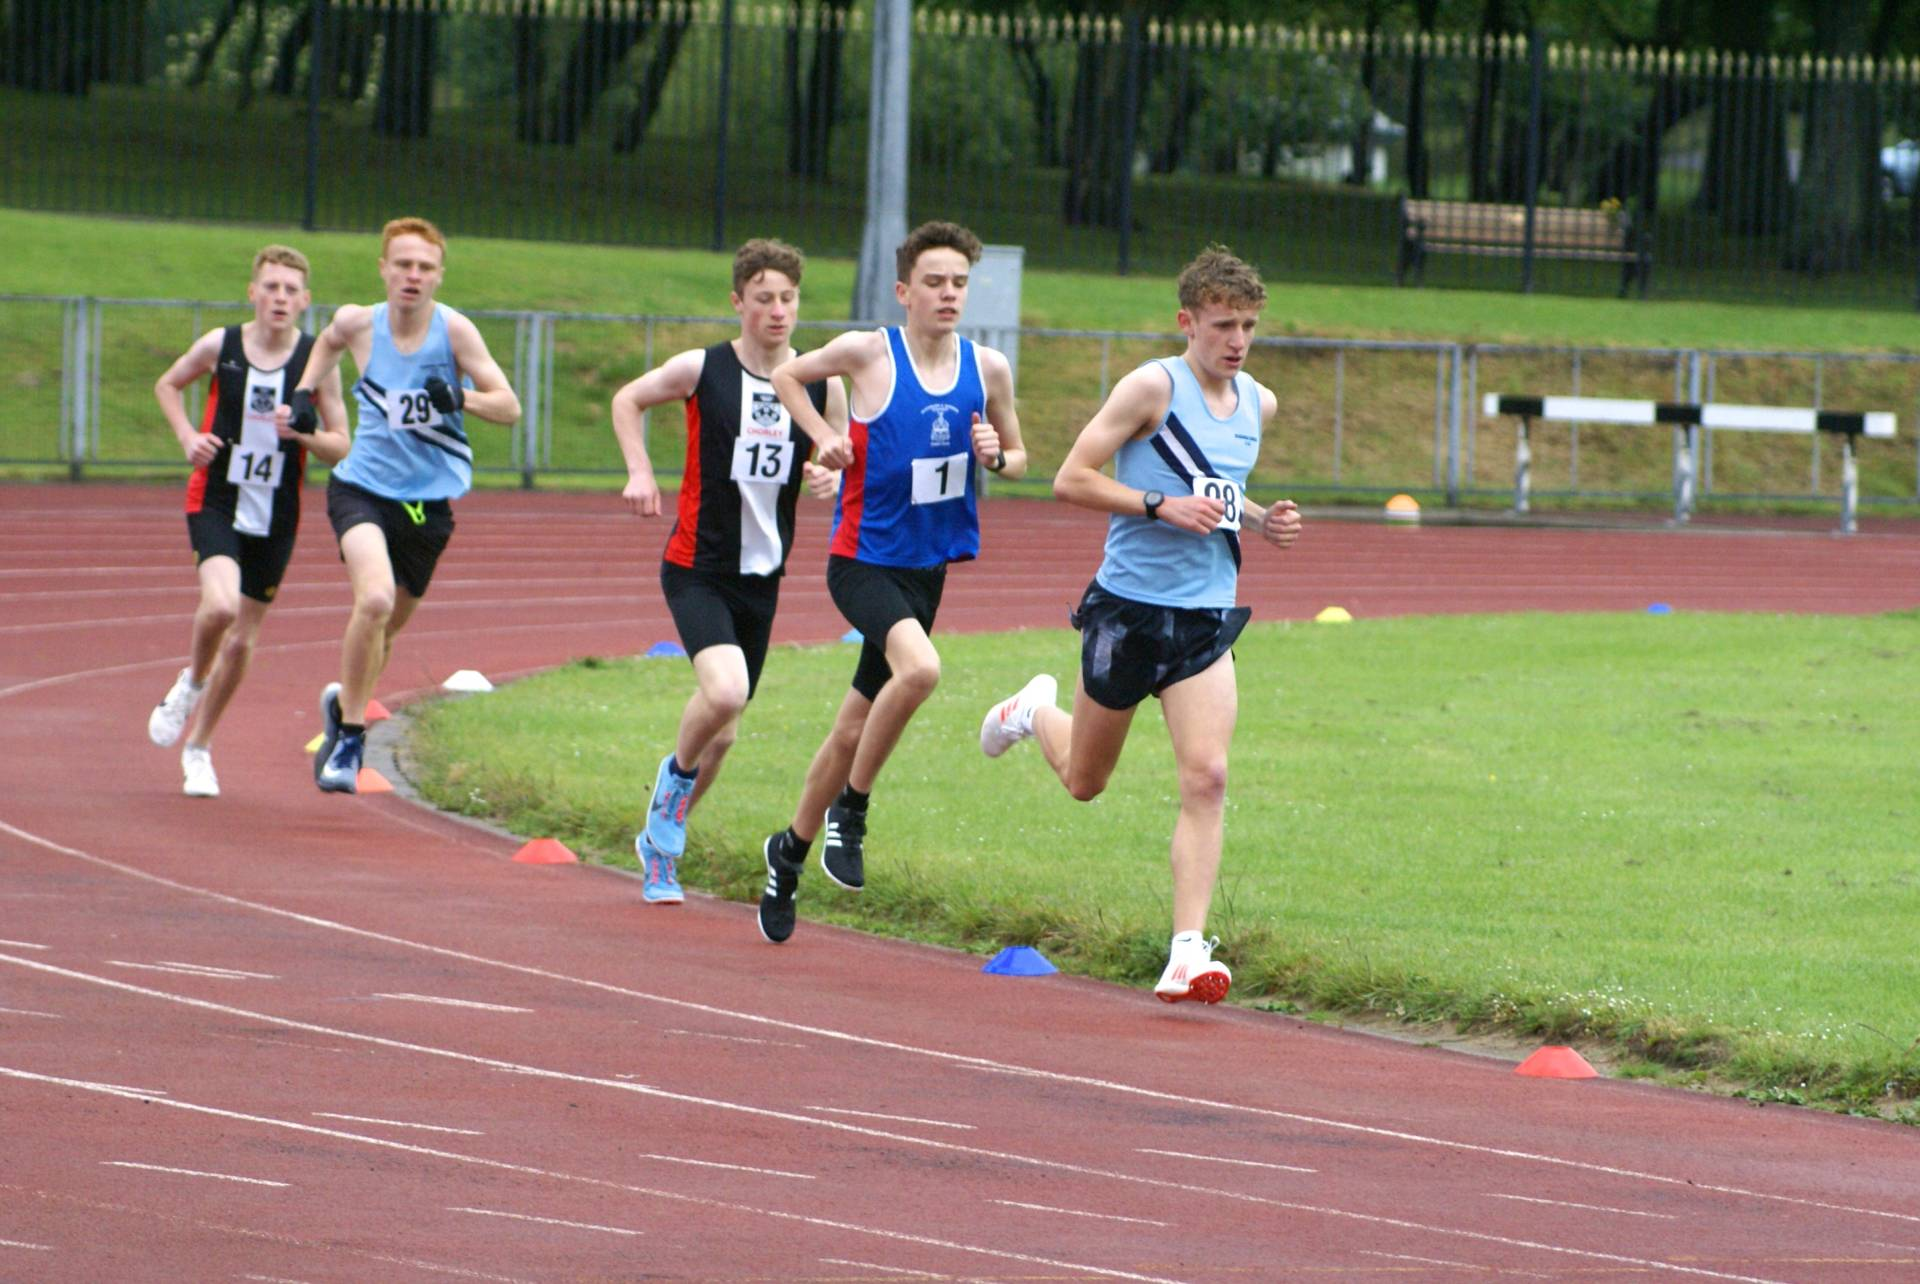 Harriers have nine winners at Lancashire Schools T&F Championships – Ben 2nd at Potters 'Arf Marathon – Another Top 10 place for John at Weets